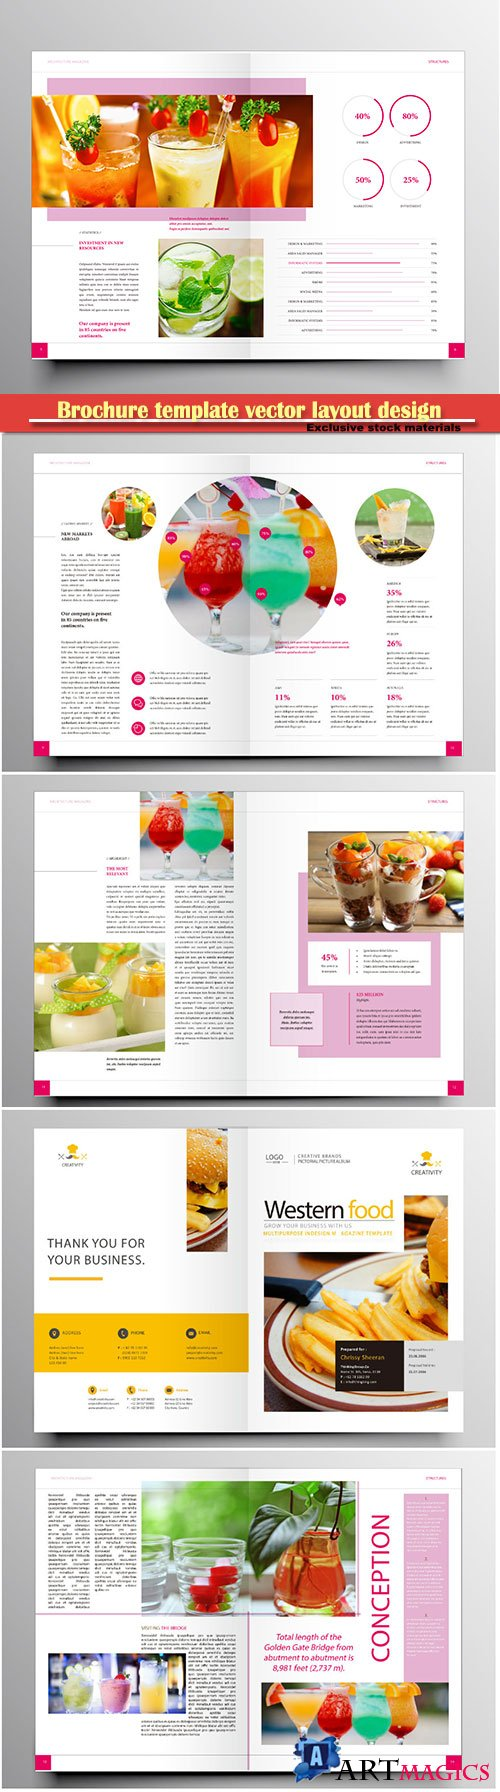 Brochure template vector layout design, corporate business annual report, magazine, flyer mockup # 183